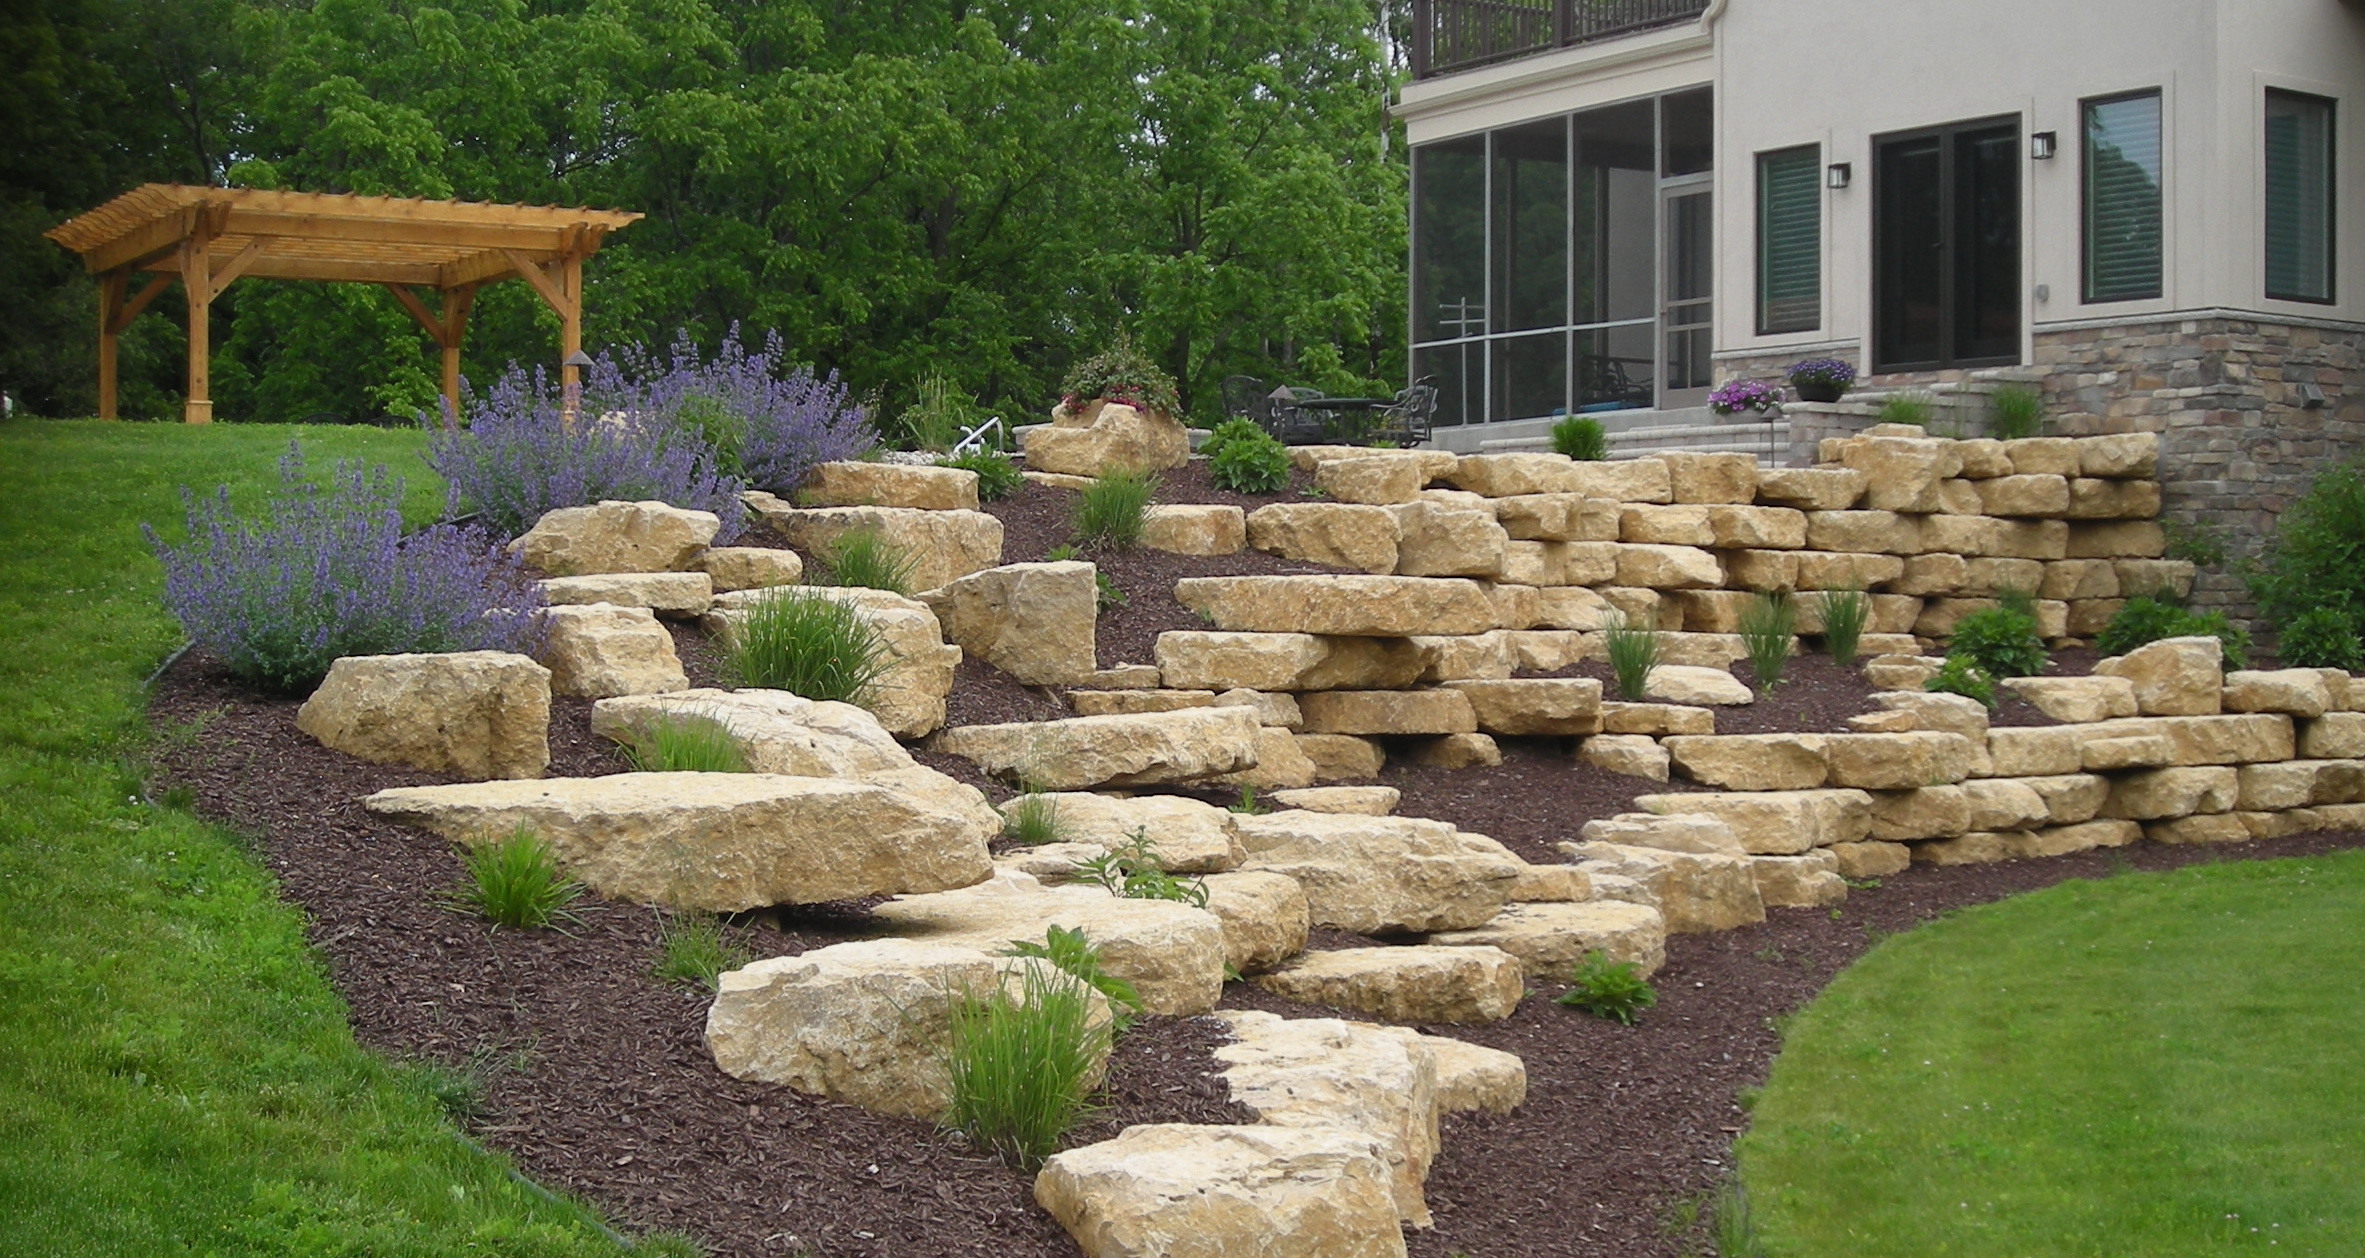 An Outdoor Landscaping Guide For Beginners